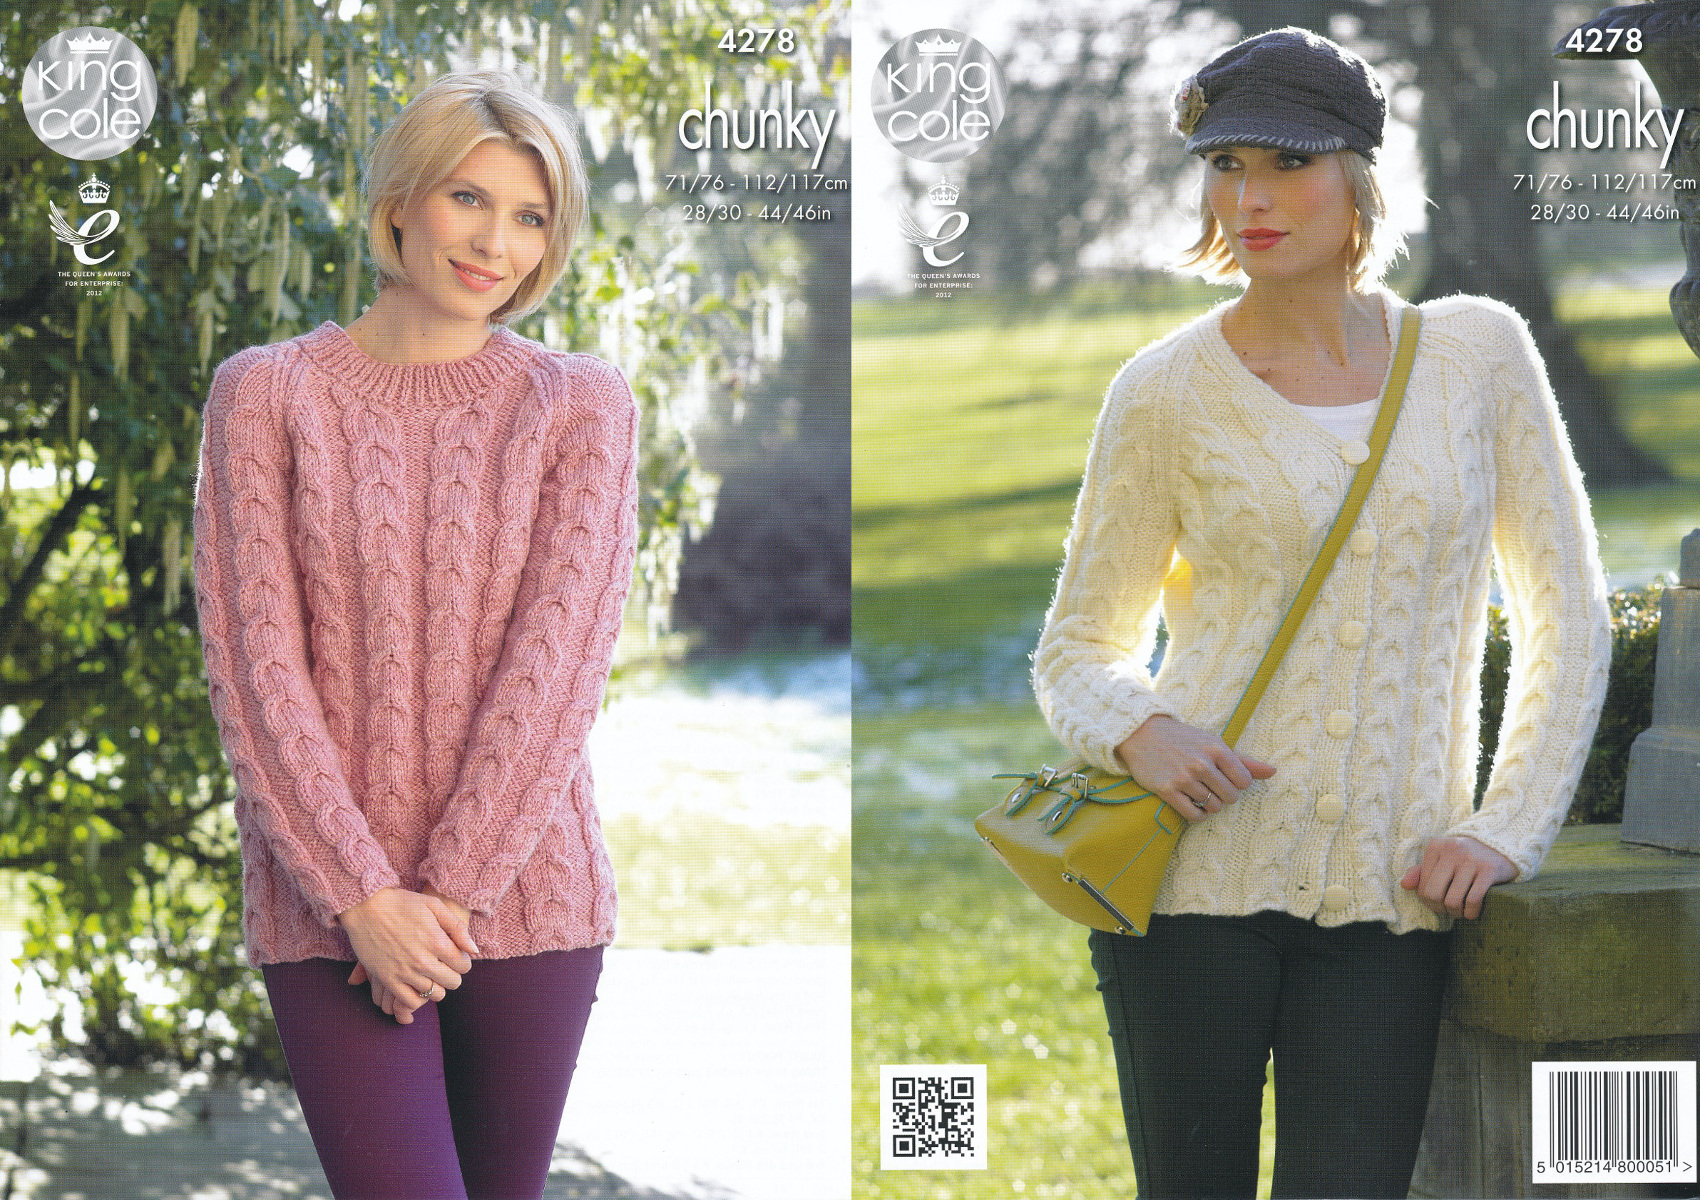 Knit Sweaters Patterns Details About King Cole Womens Chunky Knitting Pattern Ladies Cable Knit Sweater Cardigan 4278